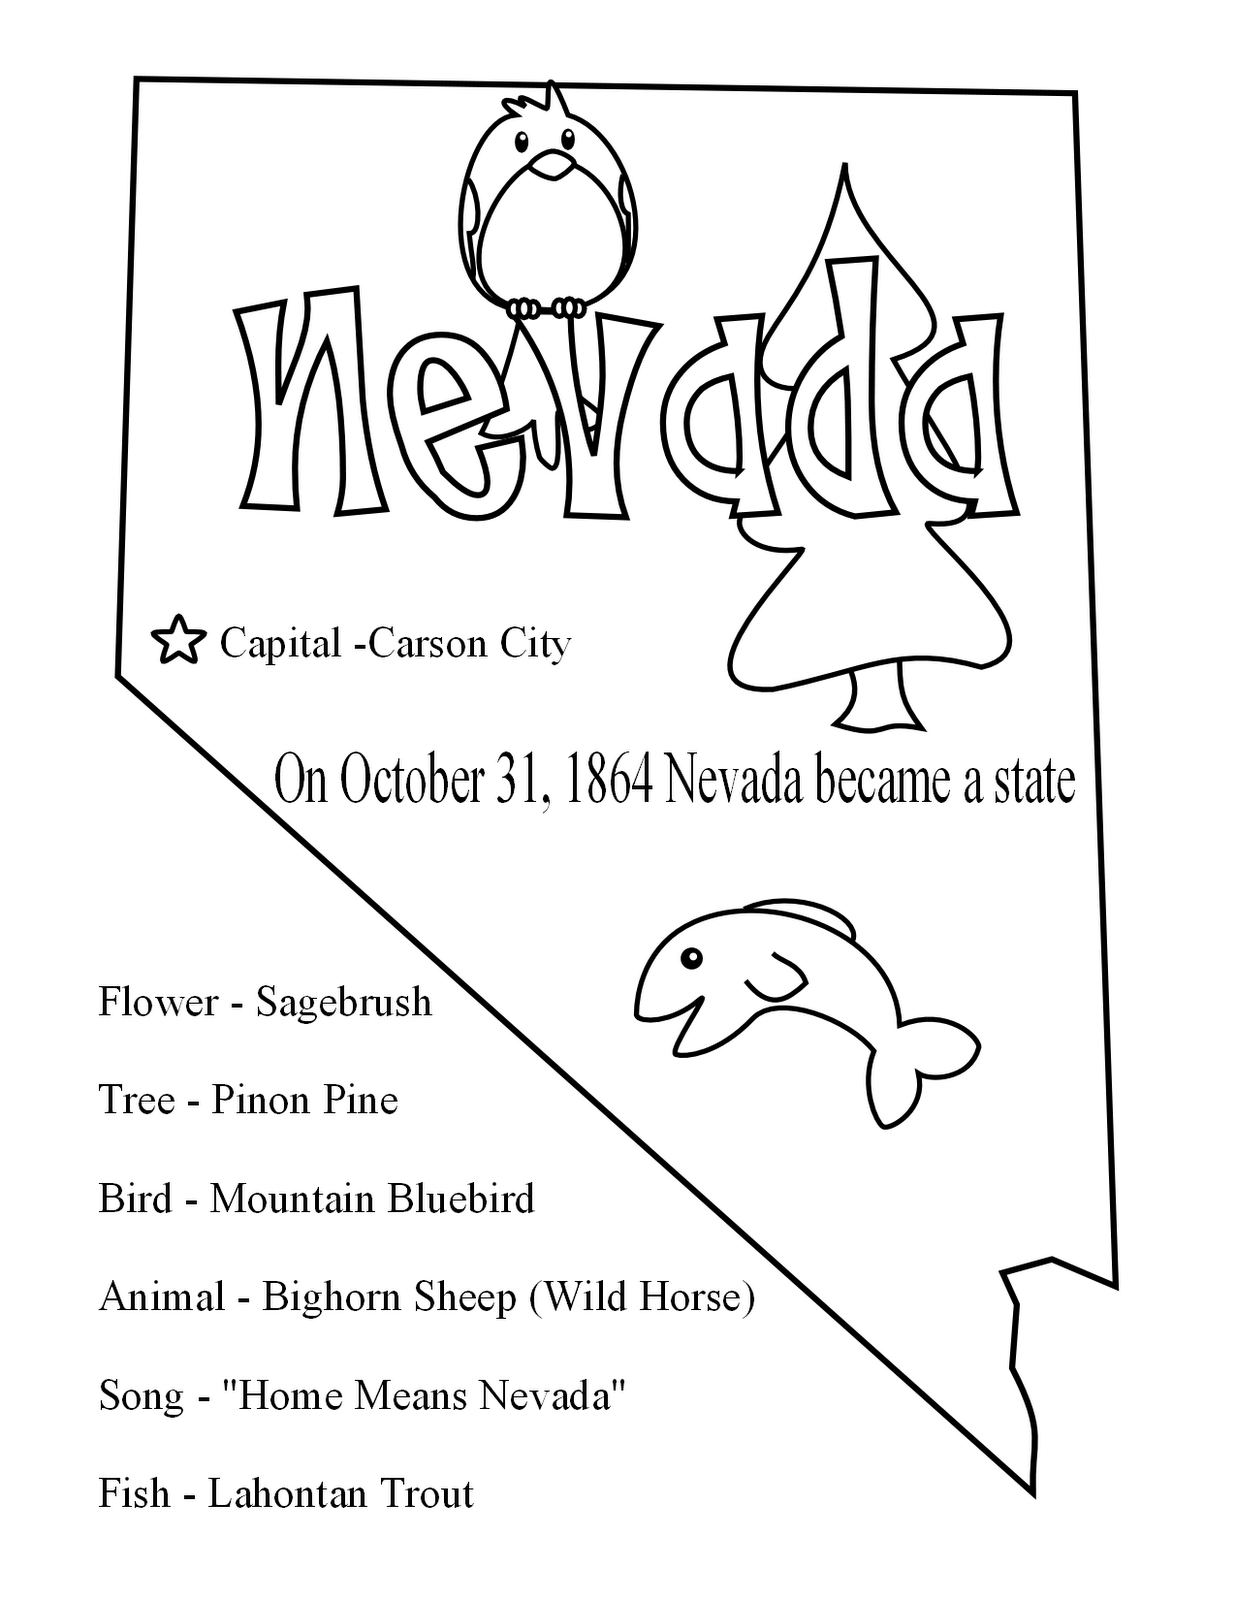 Coloring Pages Nevada State Flag Coloring Page united states flag coloring page pages gallery page